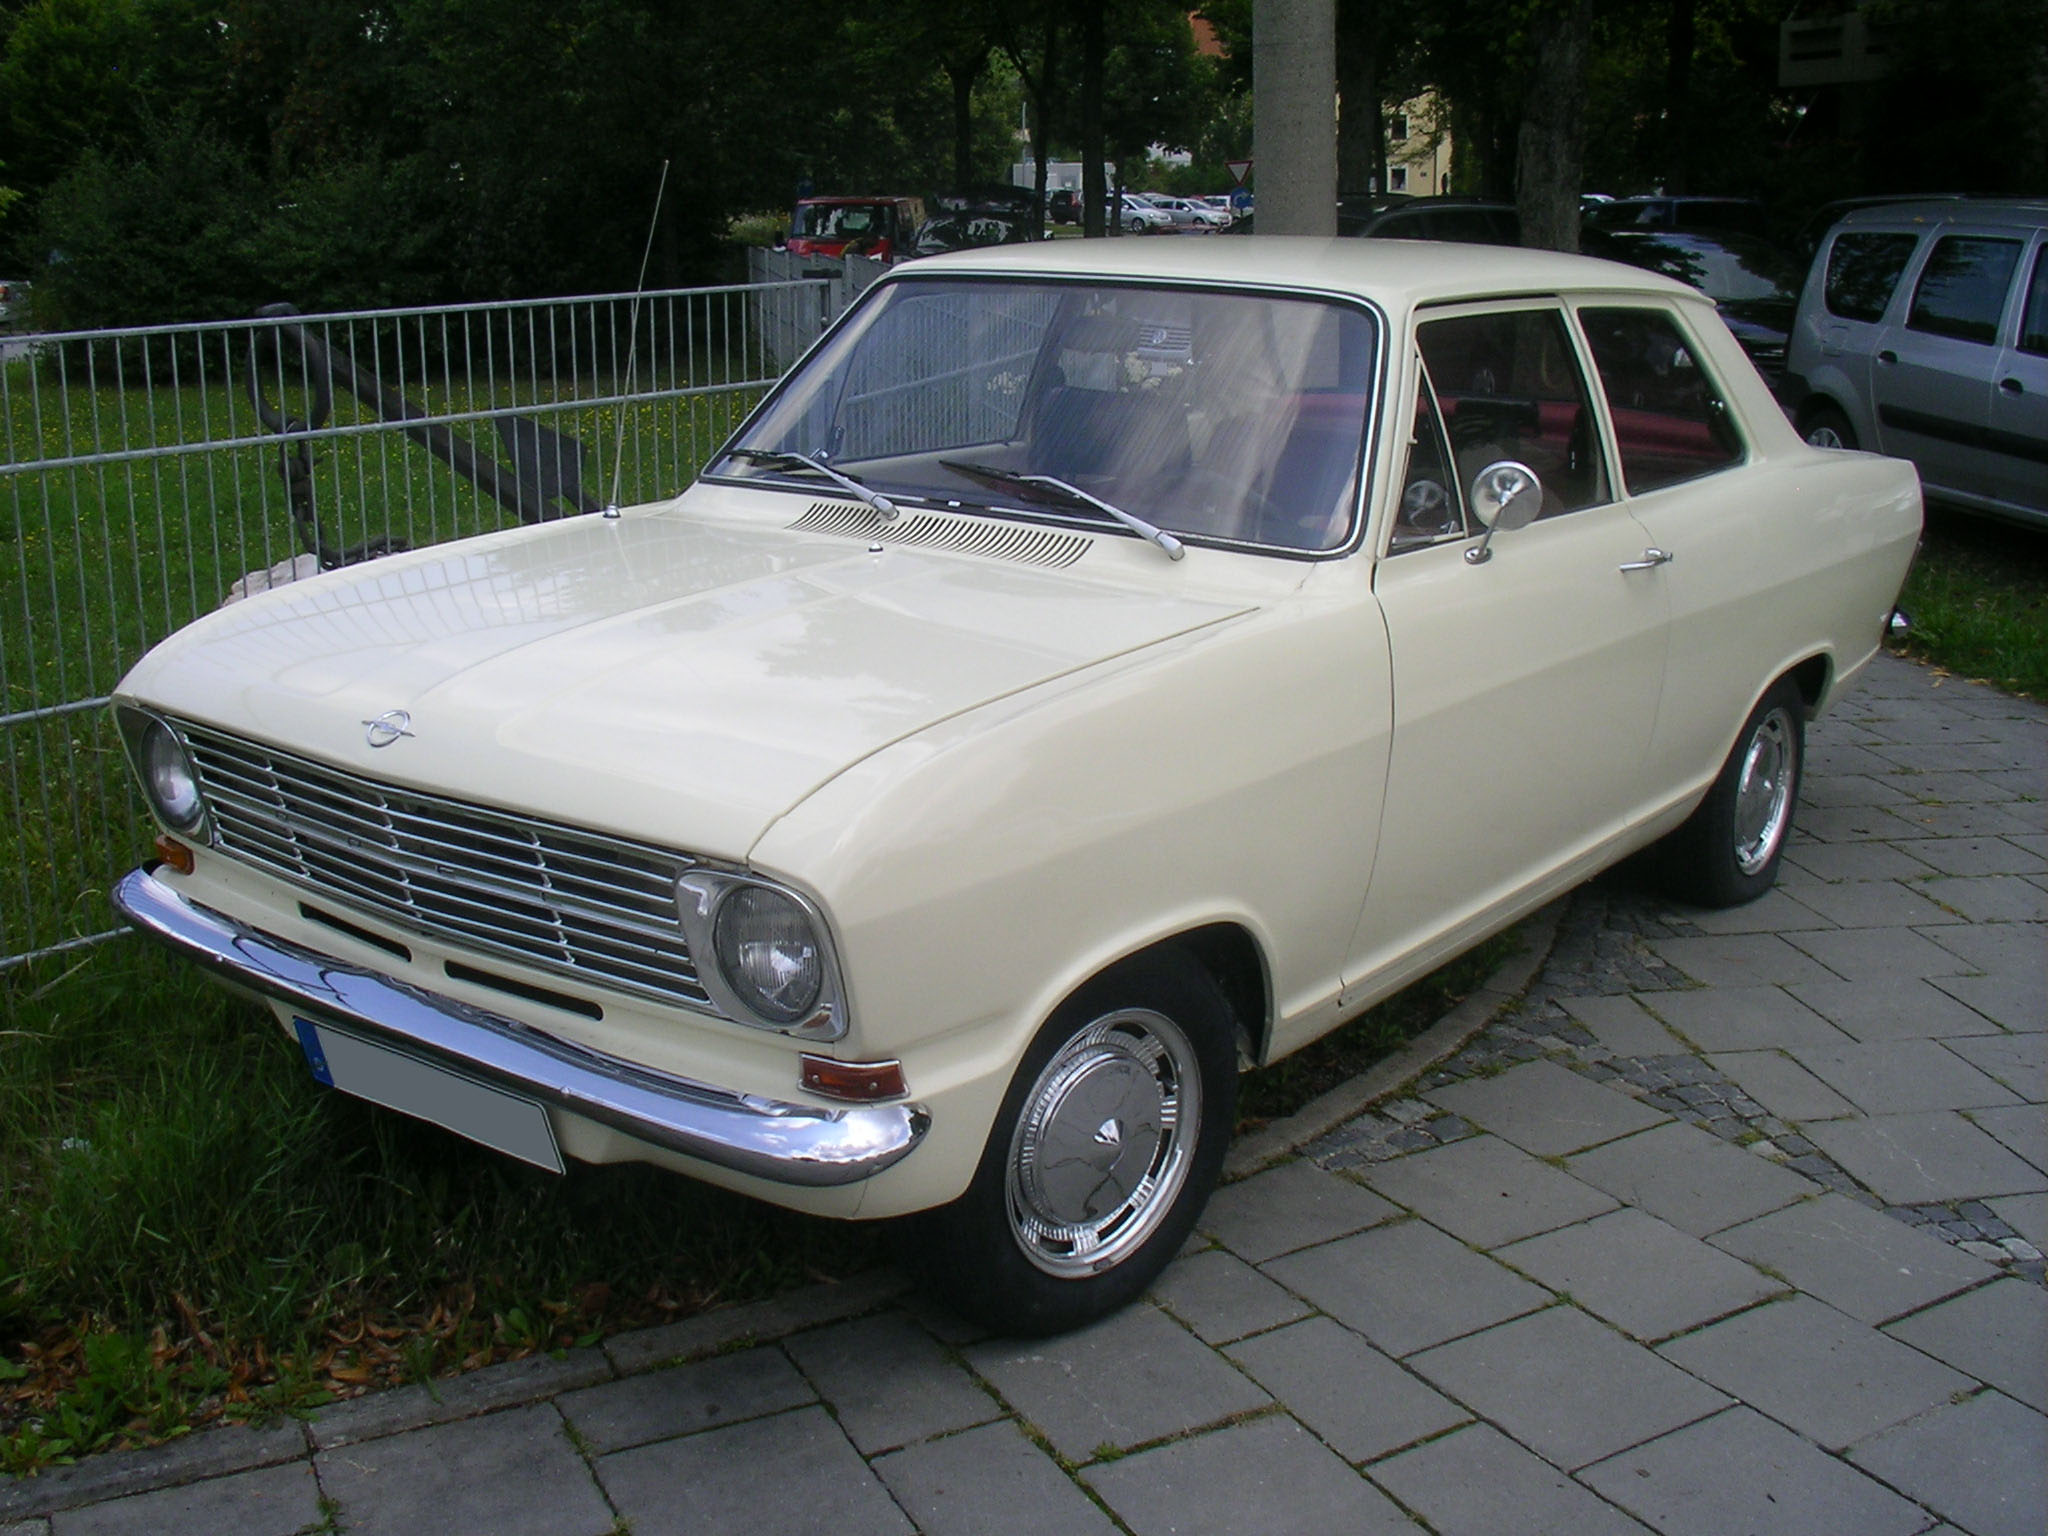 1000 images about opel kadett b on pinterest. Black Bedroom Furniture Sets. Home Design Ideas